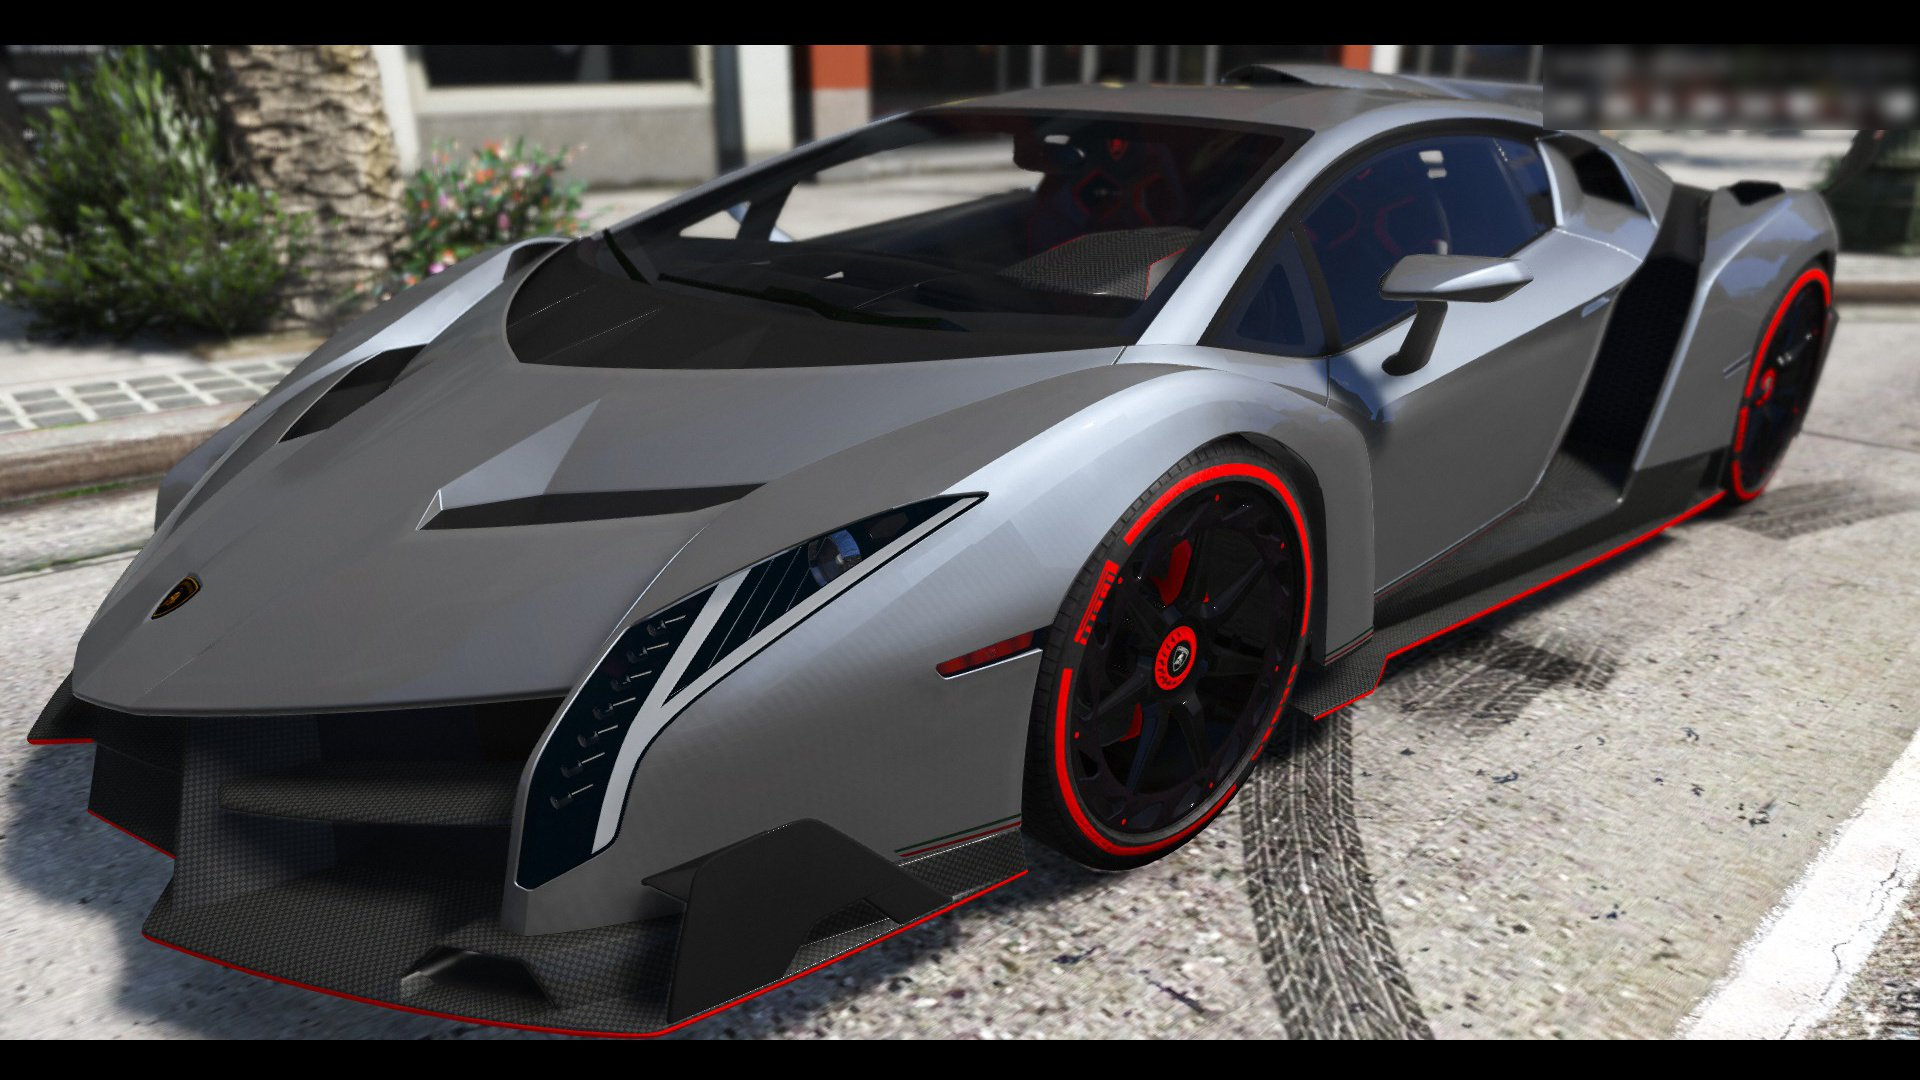 2013 Lamborghini Veneno Hq Add On Dials Gta5 Mods Com